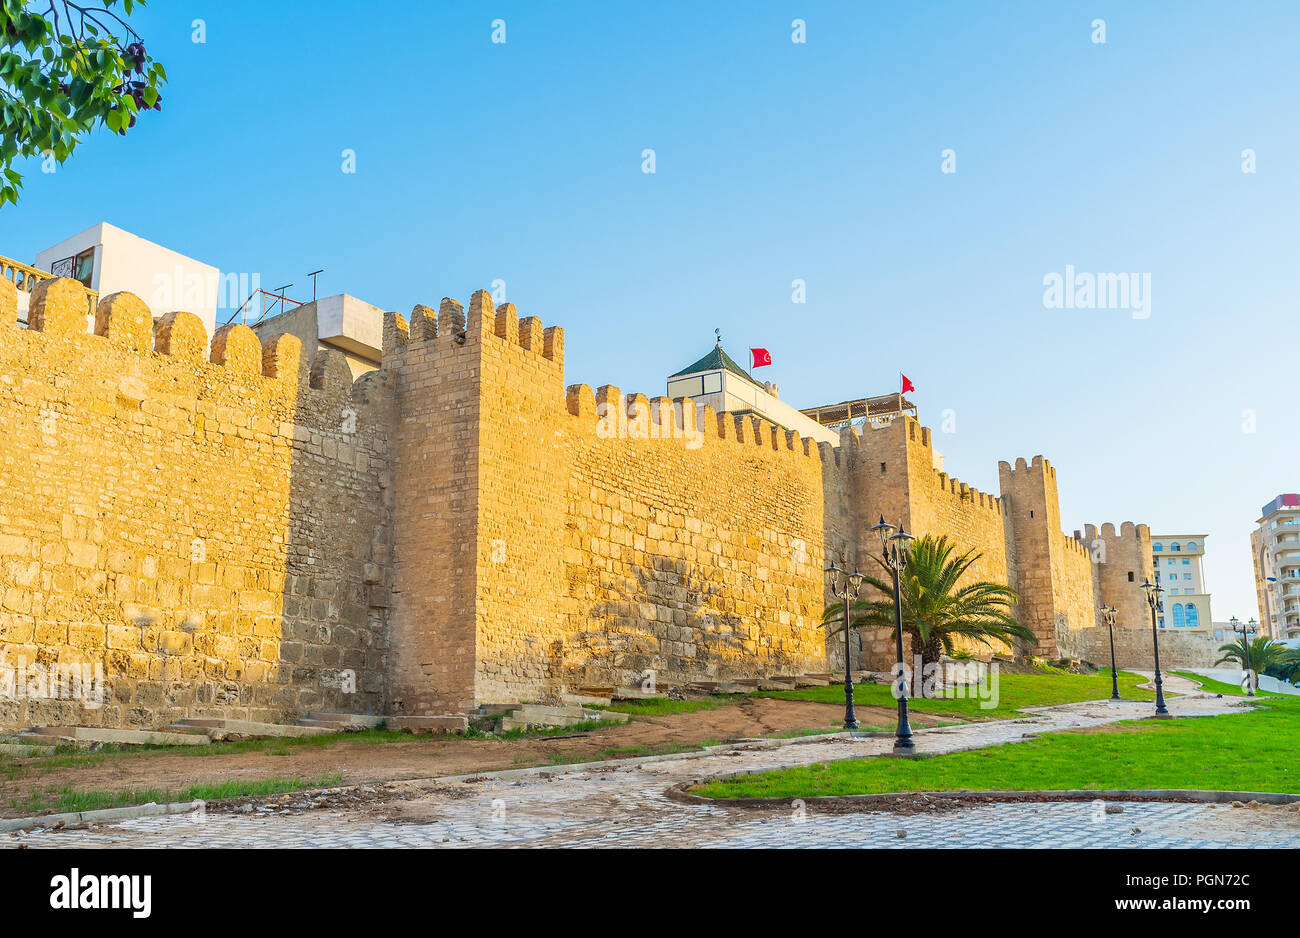 The huge city wall with small towers around the old Medina of Sousse, Tunisia. - Stock Image